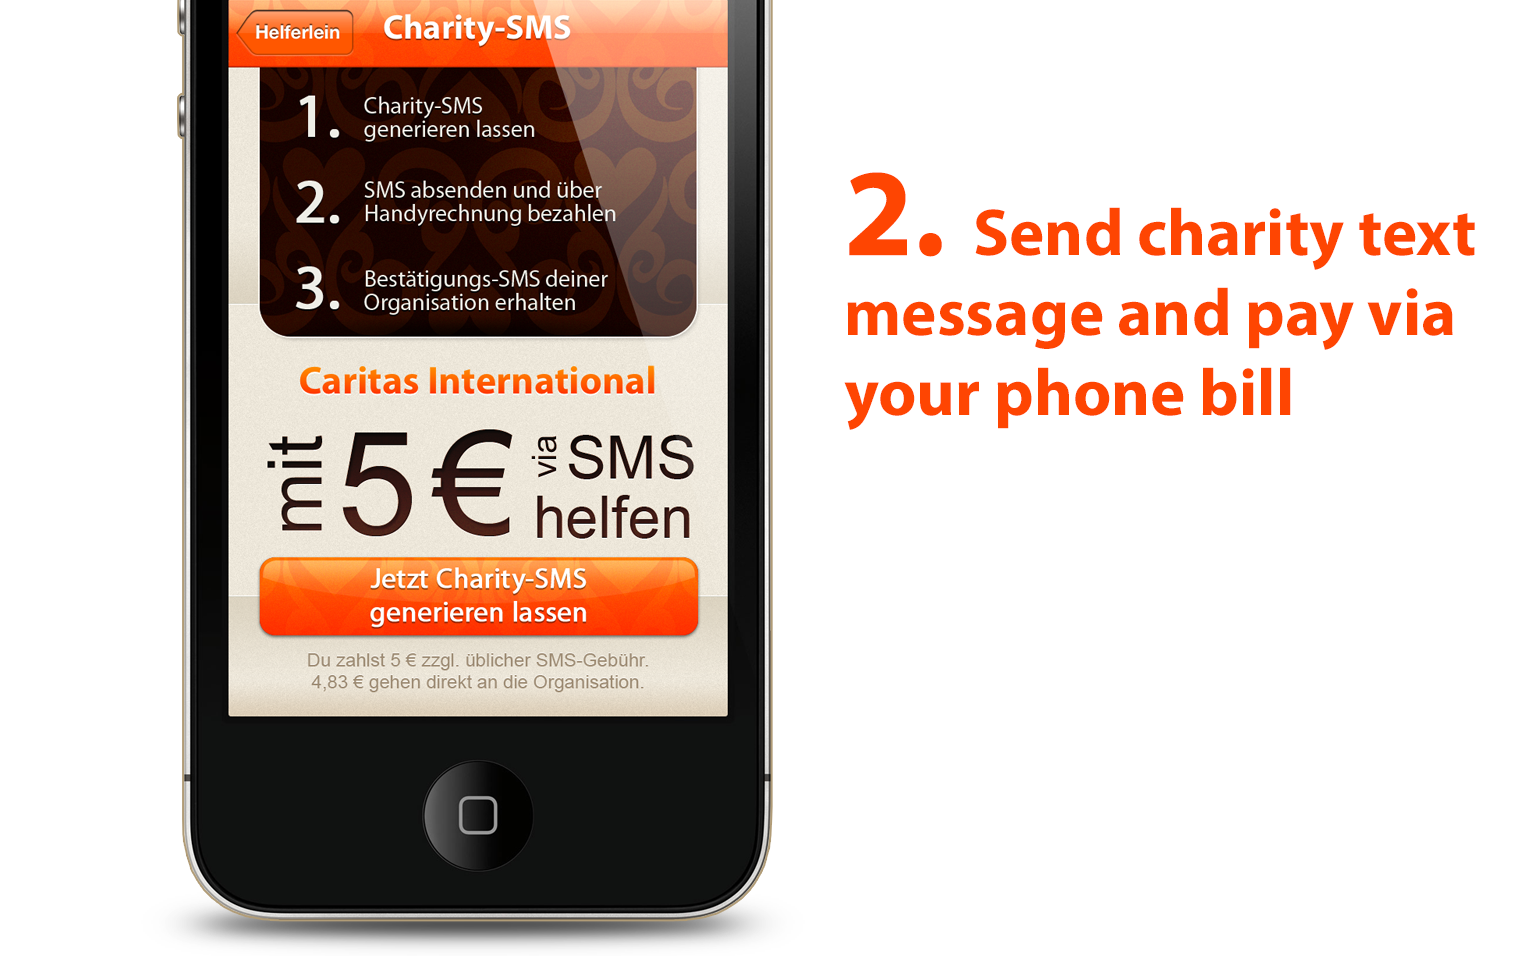 Helferlein charity iPhone app - slide 3